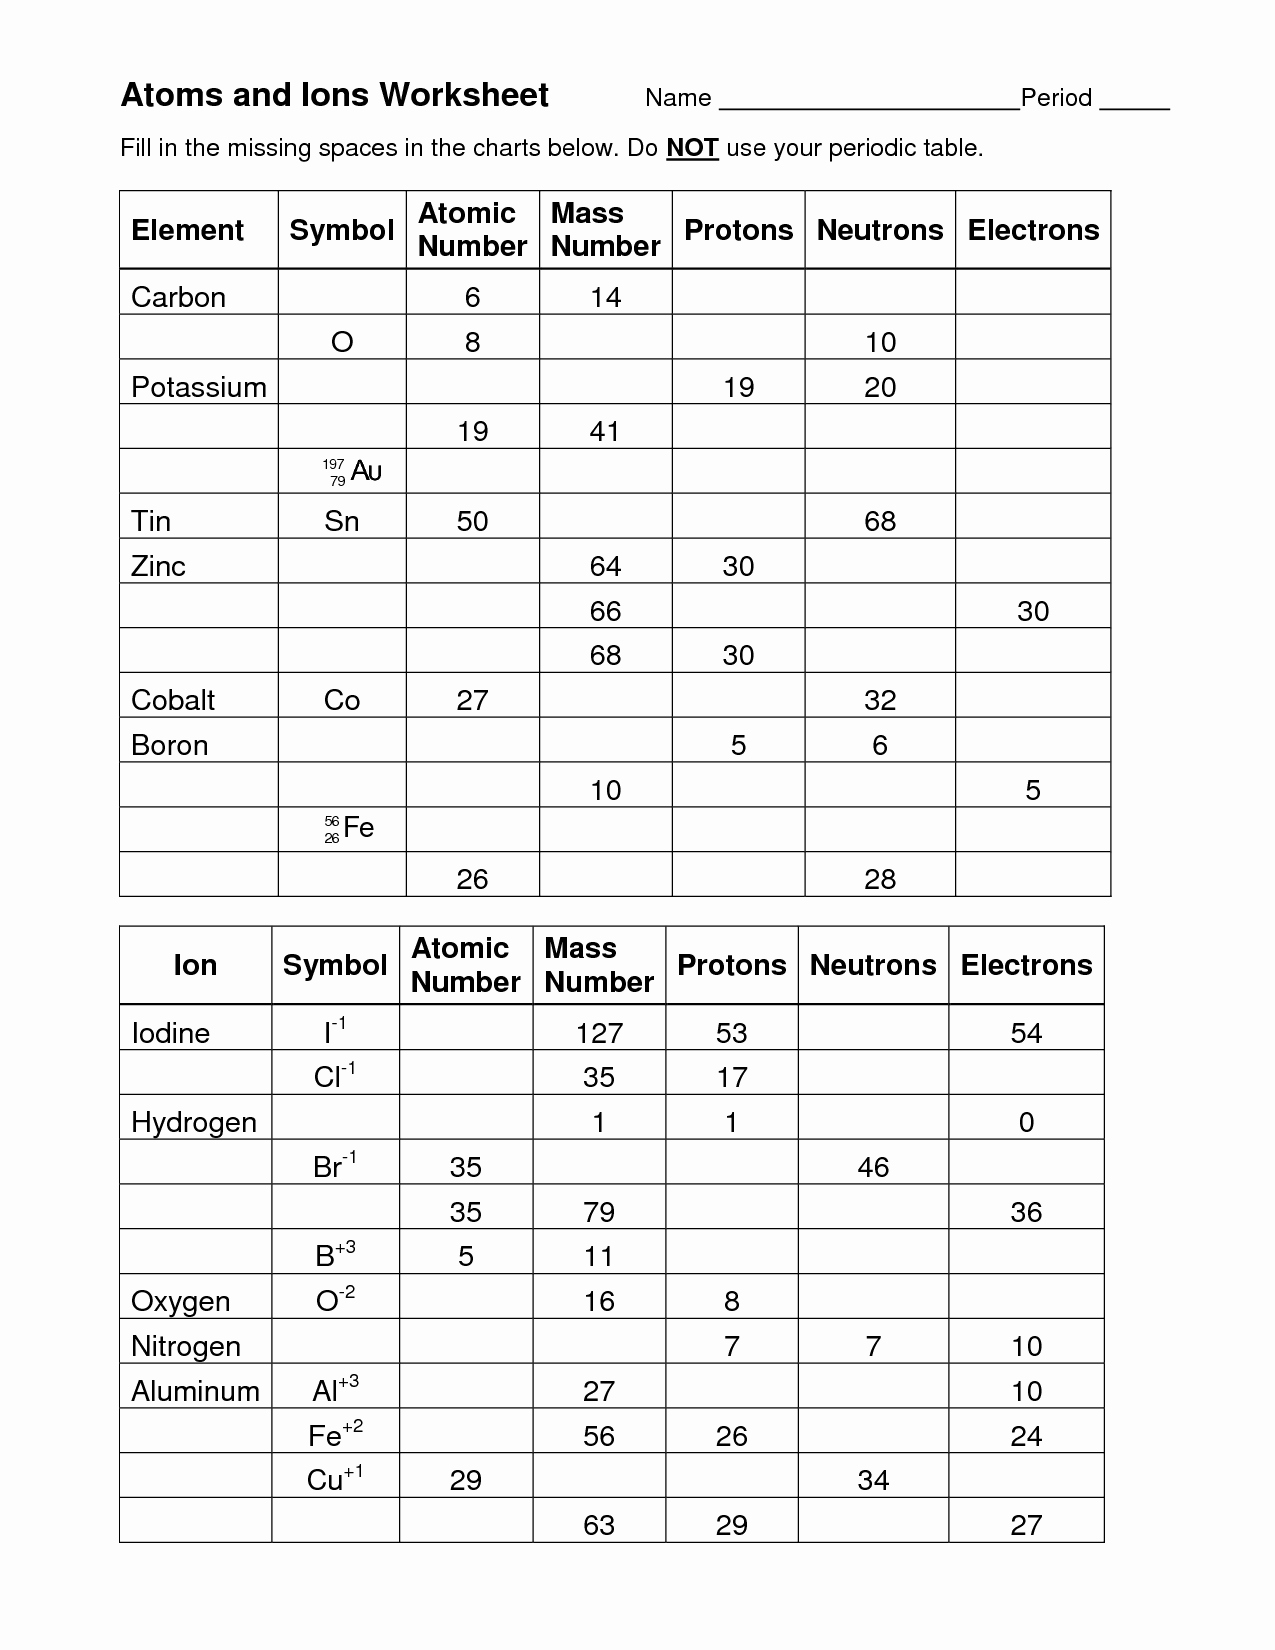 Atoms and Ions Worksheet Answers Lovely 13 Best Of Element Symbols Worksheet Answer Key